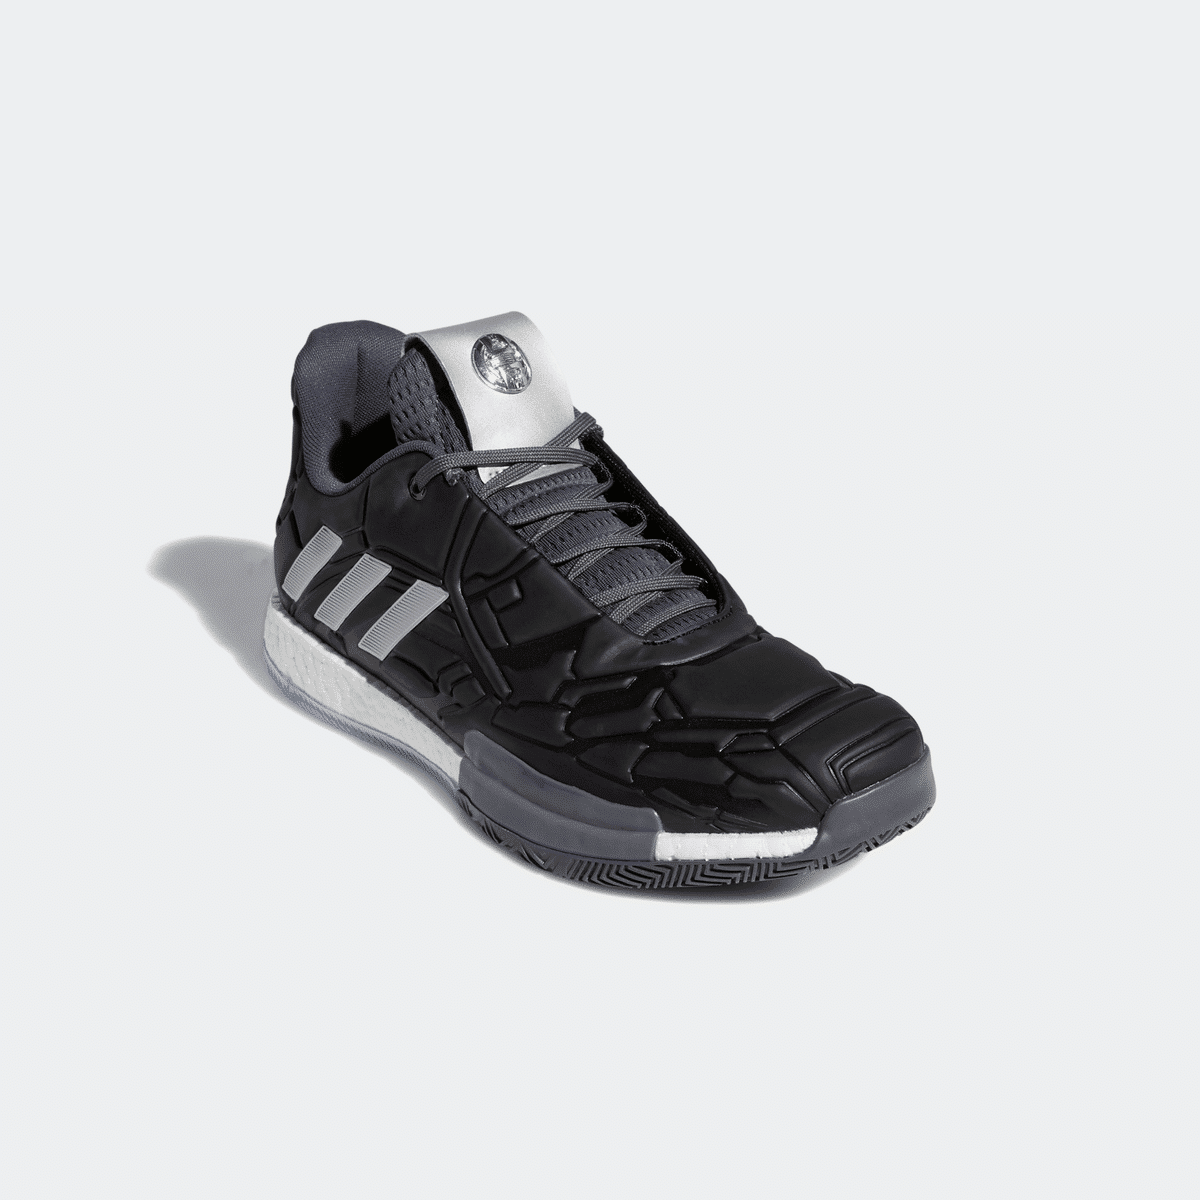 A New Marvel x adidas Harden Vol  3 Colorway has Been Spotted